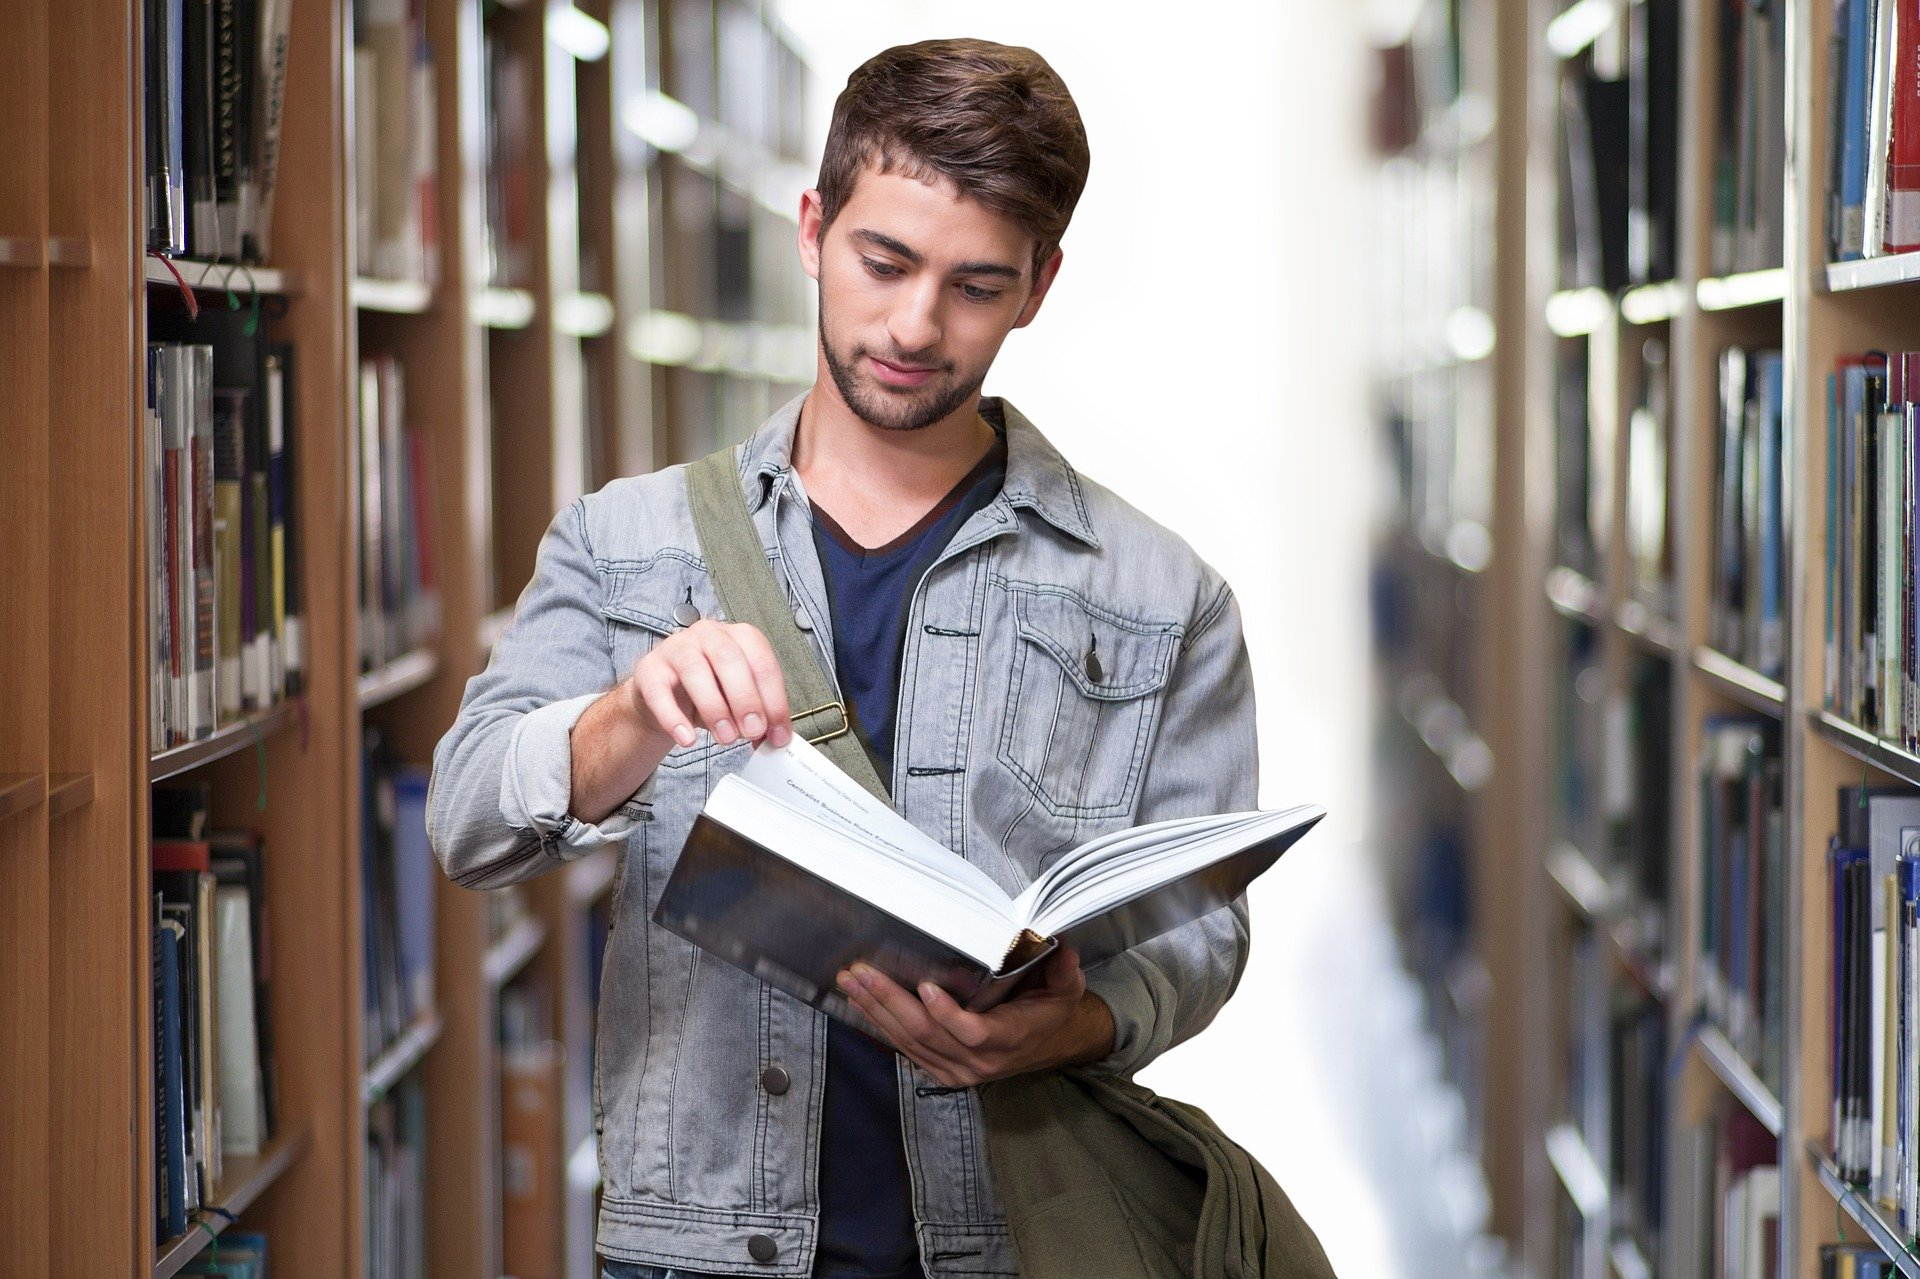 A student at the library